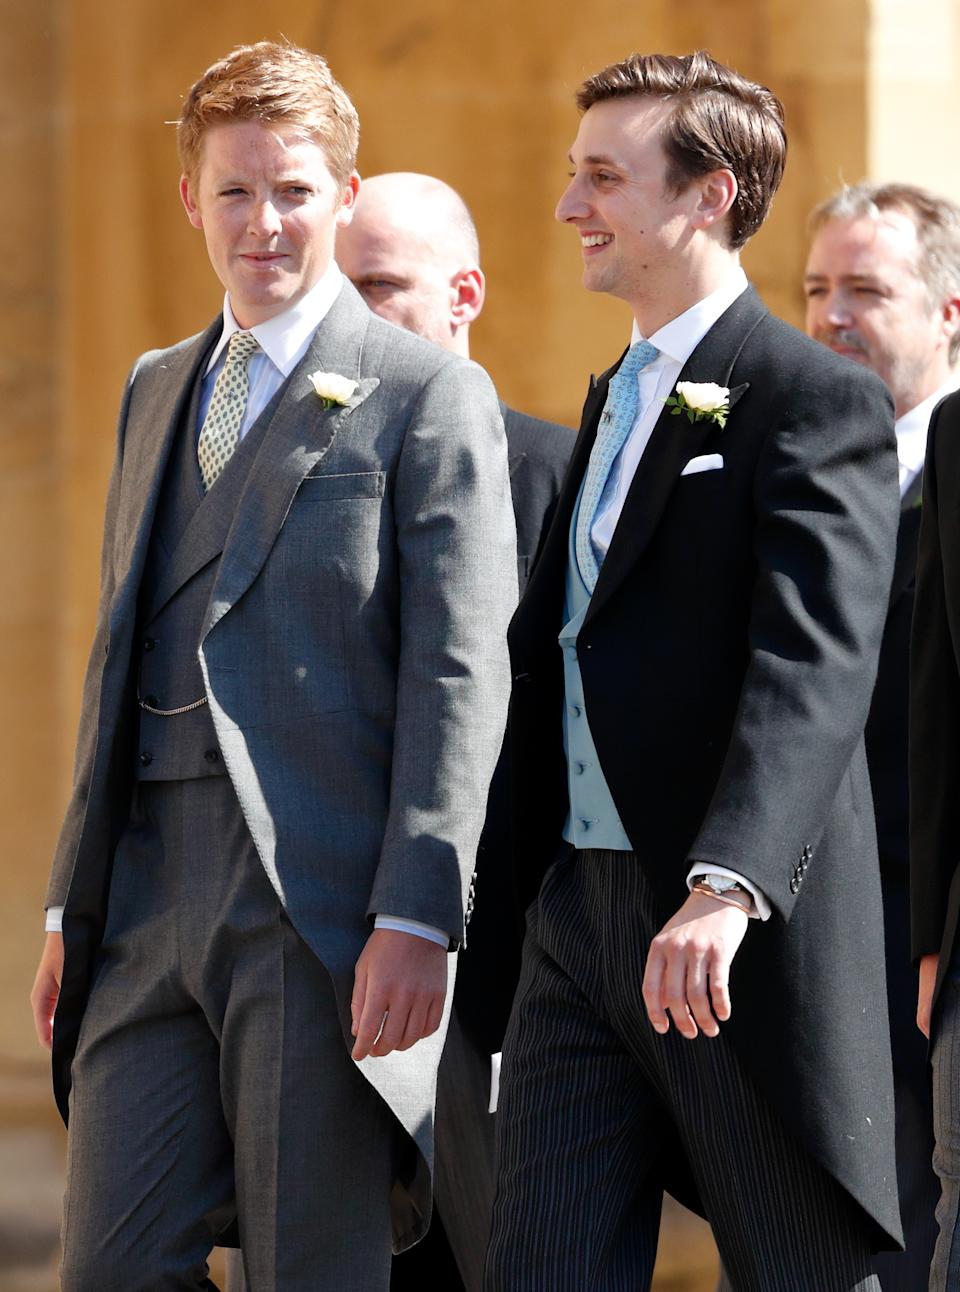 WINDSOR, UNITED KINGDOM - MAY 19: (EMBARGOED FOR PUBLICATION IN UK NEWSPAPERS UNTIL 24 HOURS AFTER CREATE DATE AND TIME) Hugh Grosvenor, Duke of Westminster and Charlie van Straubenzee attend the wedding of Prince Harry to Ms Meghan Markle at St George's Chapel, Windsor Castle on May 19, 2018 in Windsor, England. Prince Henry Charles Albert David of Wales marries Ms. Meghan Markle in a service at St George's Chapel inside the grounds of Windsor Castle. Among the guests were 2200 members of the public, the royal family and Ms. Markle's Mother Doria Ragland. (Photo by Max Mumby/Indigo/Getty Images)